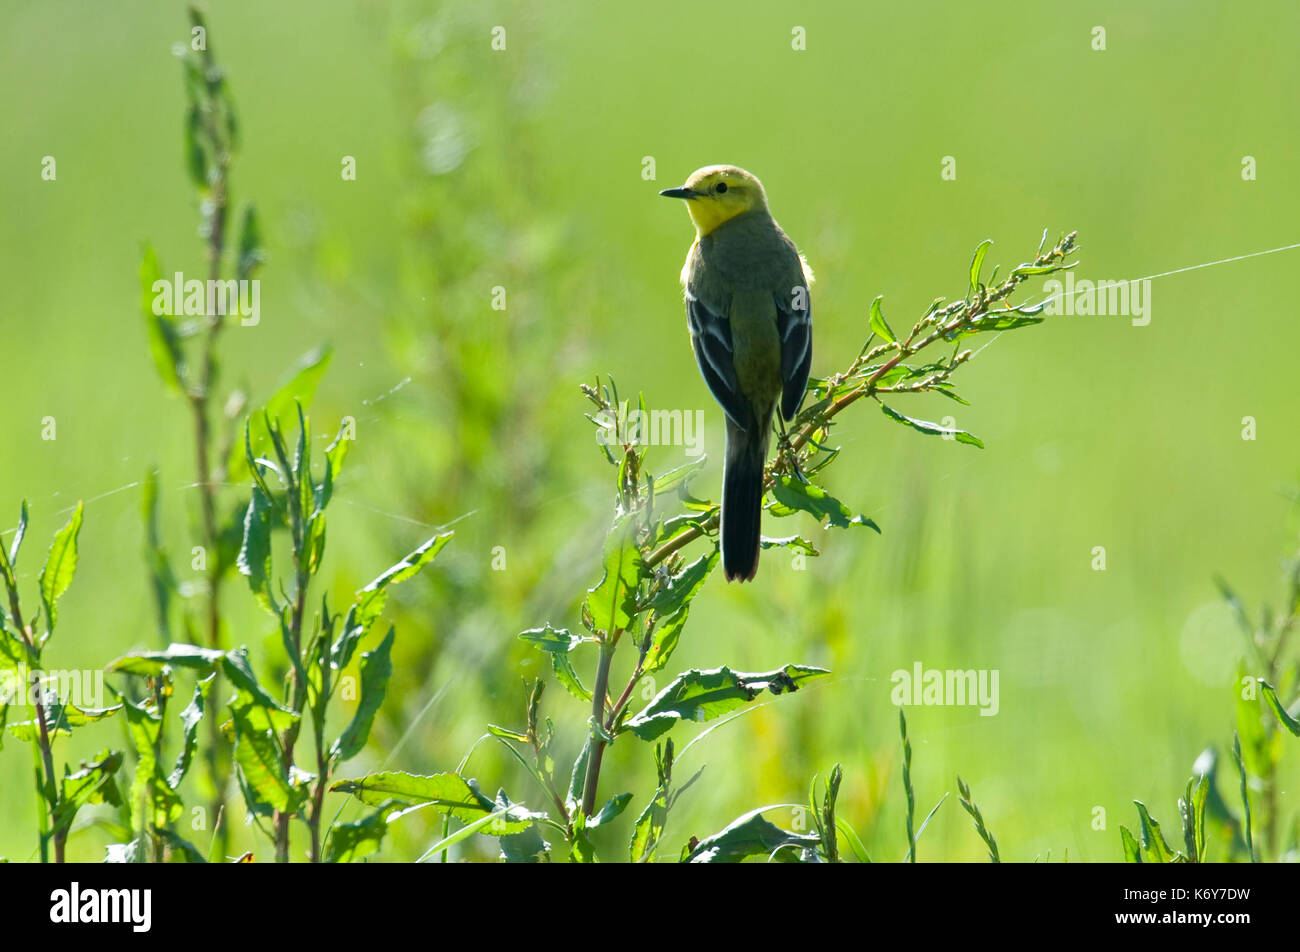 Yellow Wagtail, Motacilla flava, Elmley Marshes, Kent, UK, summer migrant, backlight, perched on grass reeds - Stock Image